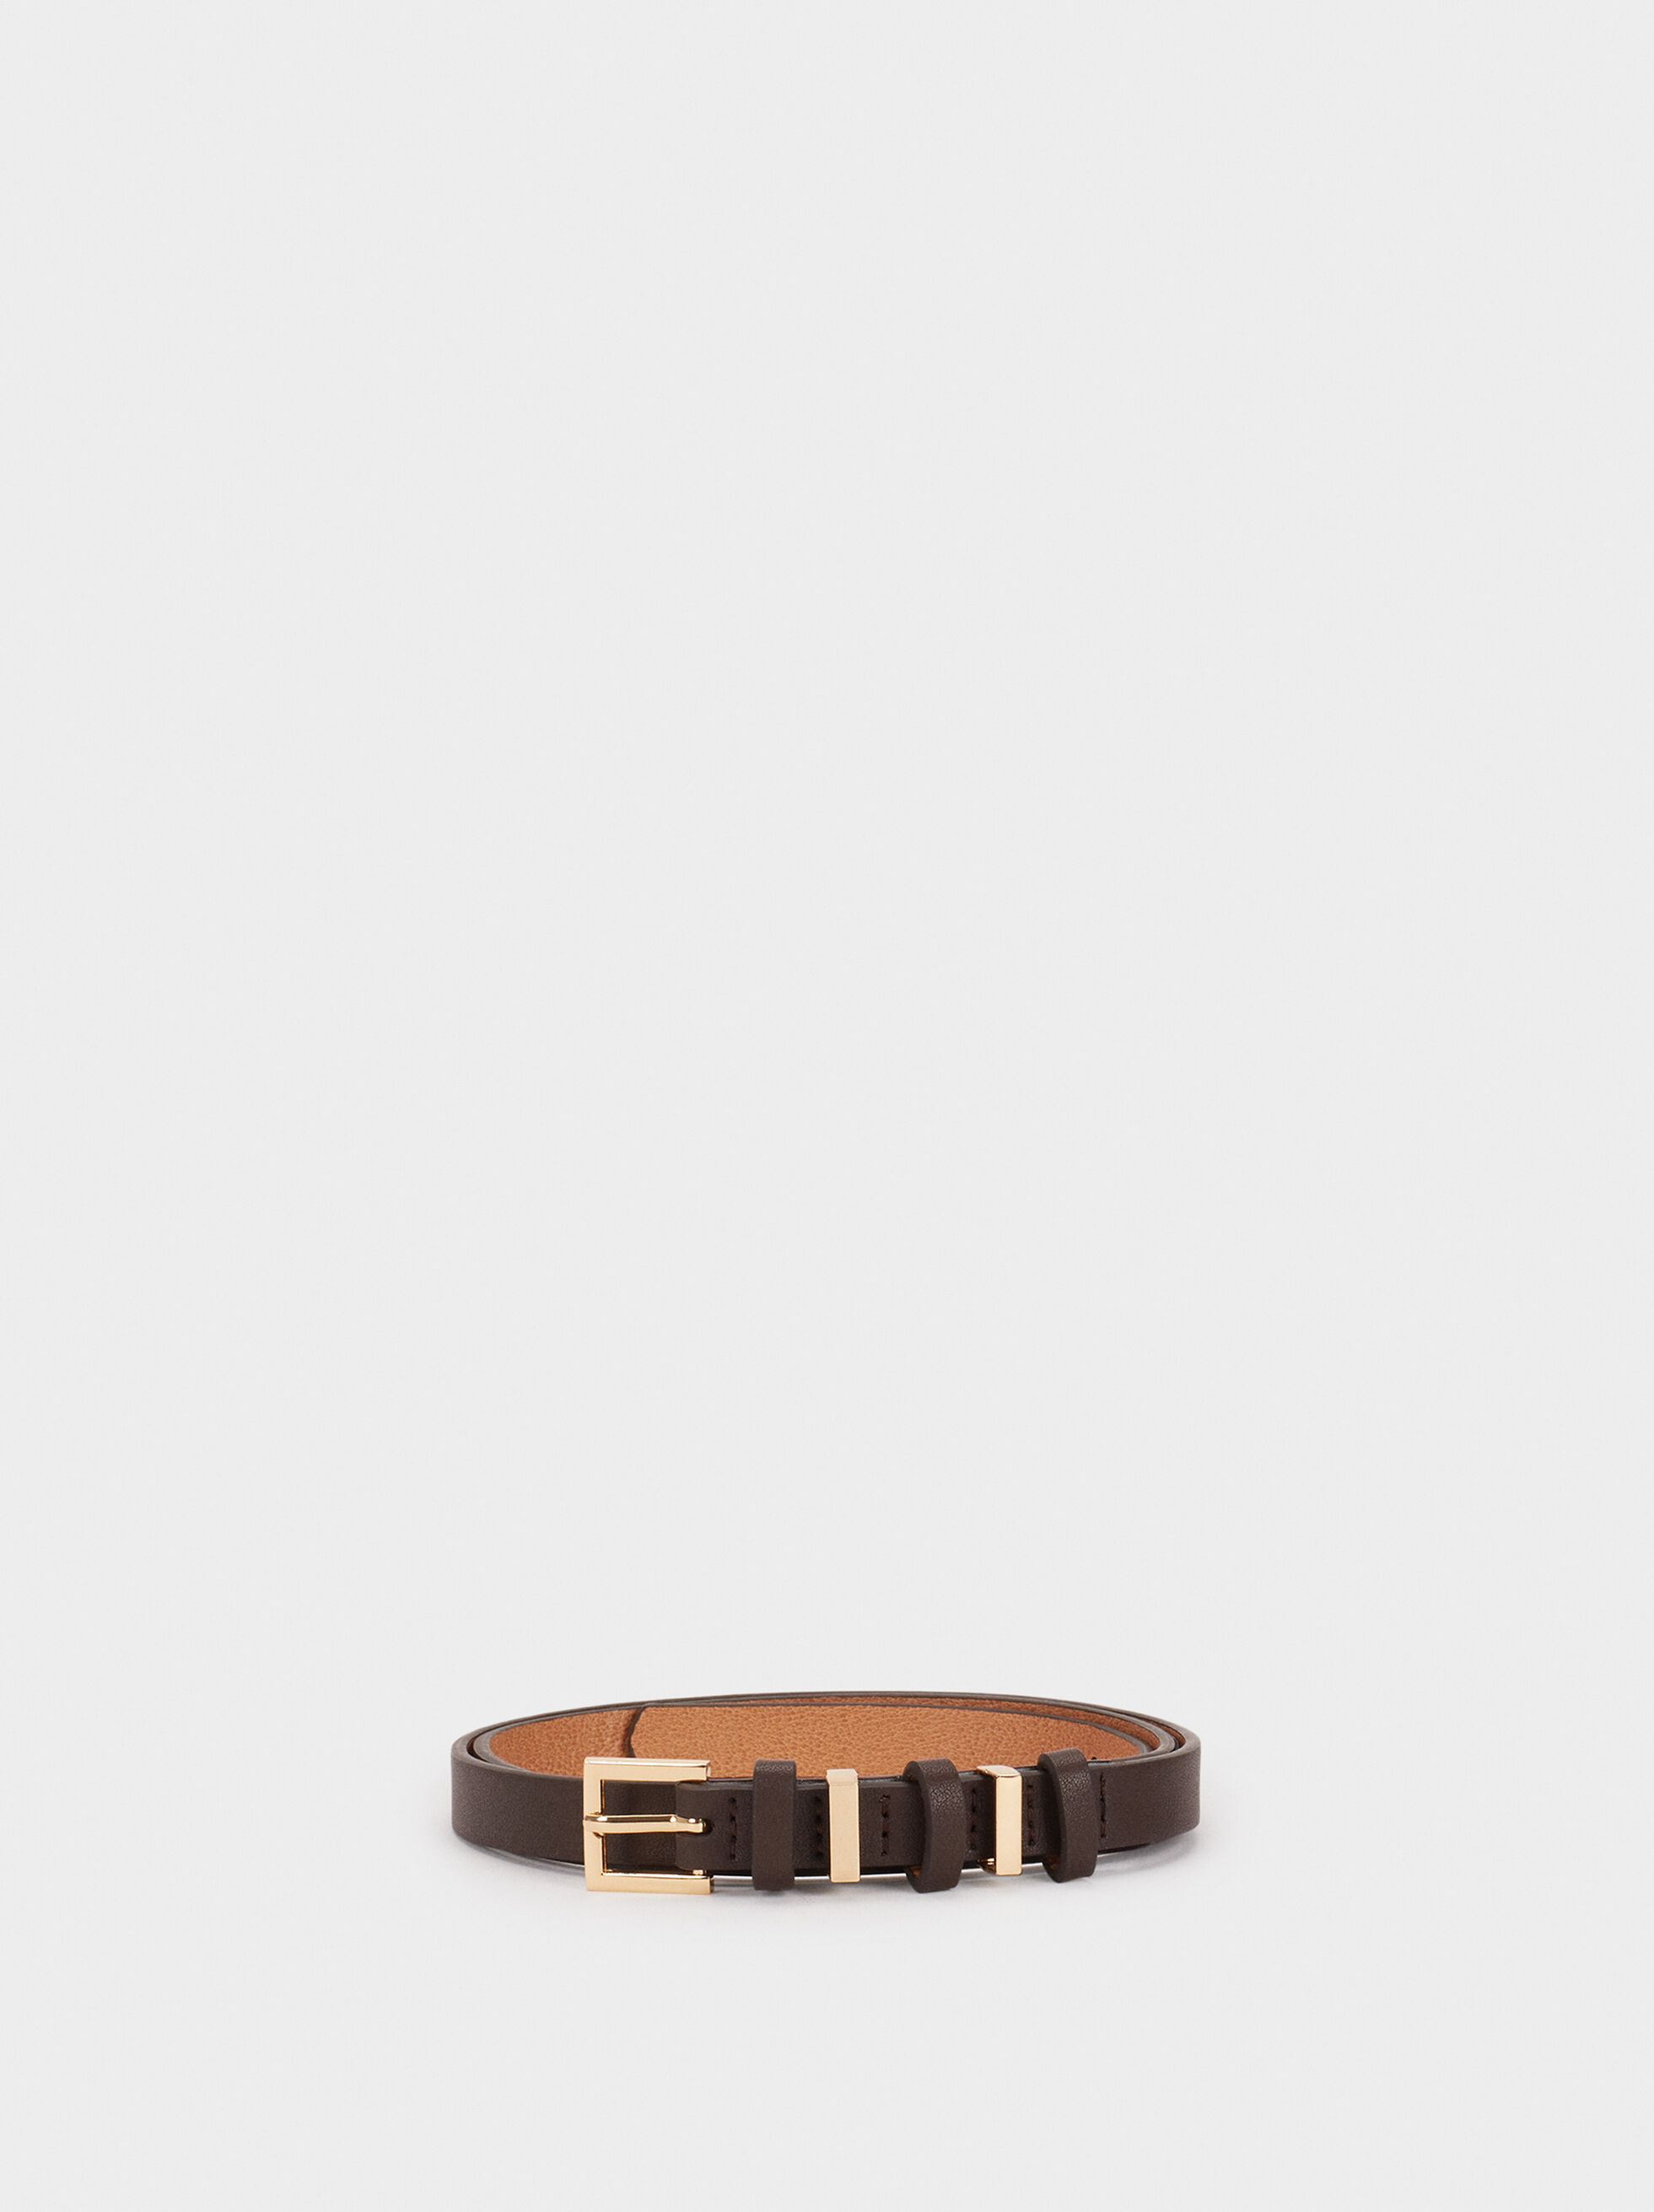 Belt With Contrast Buckles, Brown, hi-res